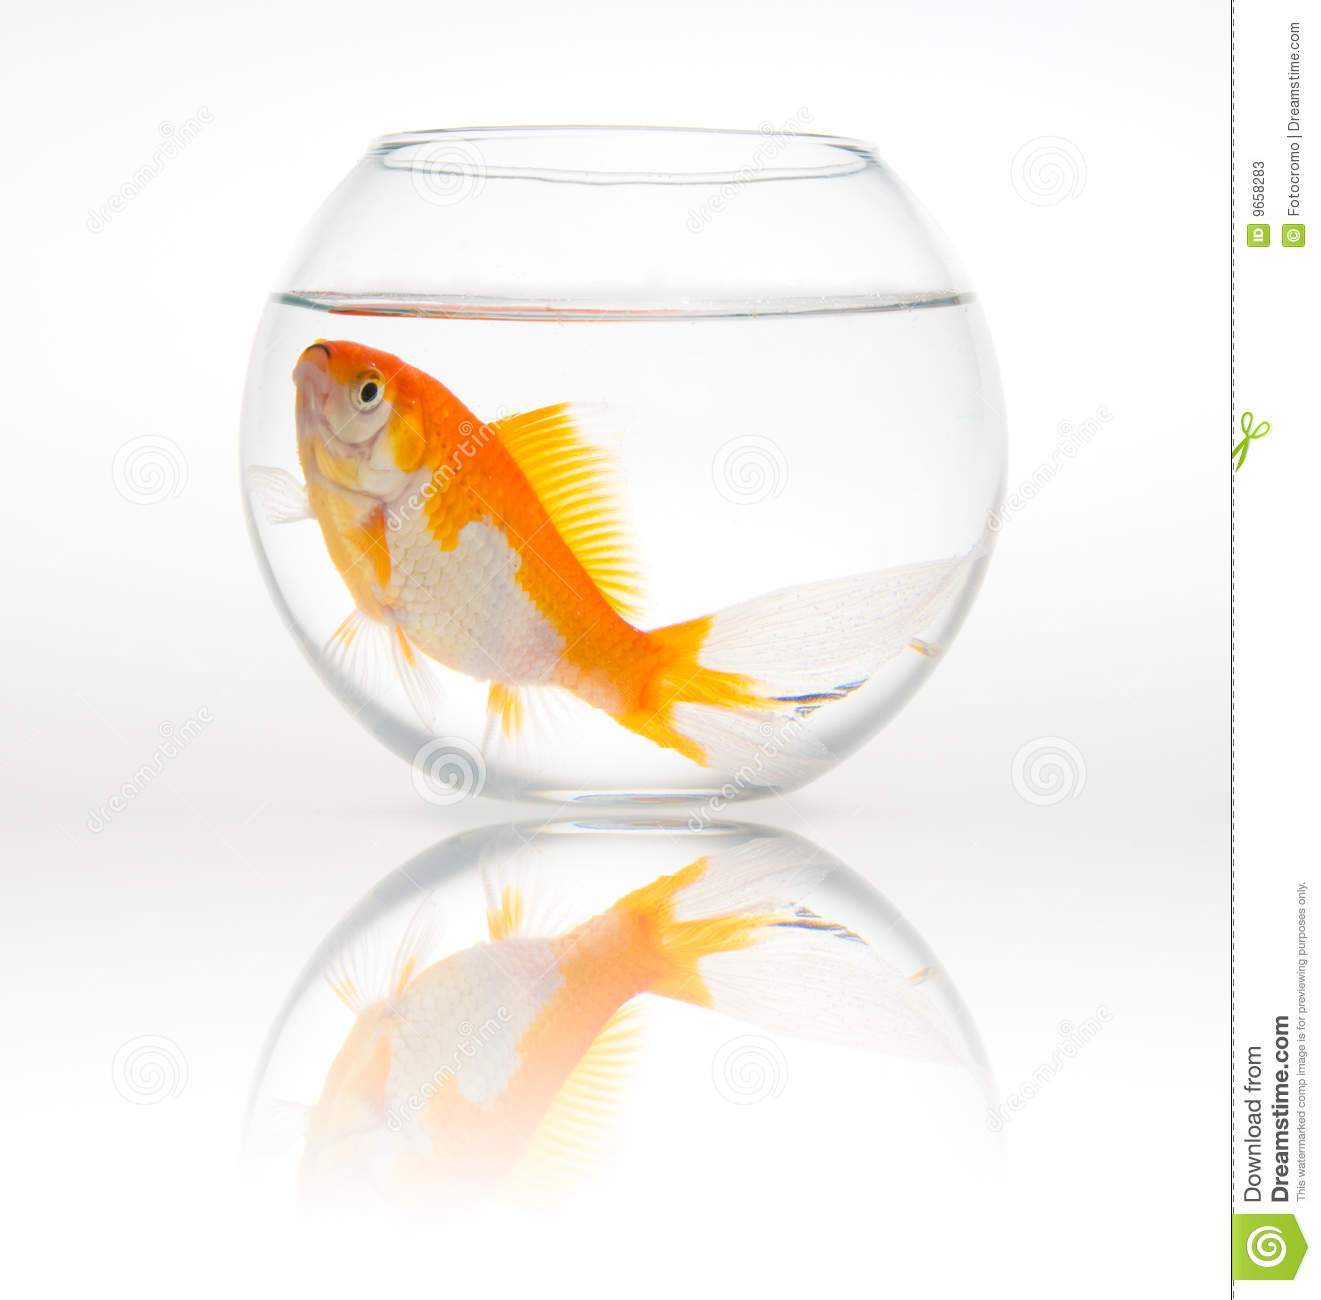 Big goldfish in a small bowl stock photos image 9658283 for Small fish bowl